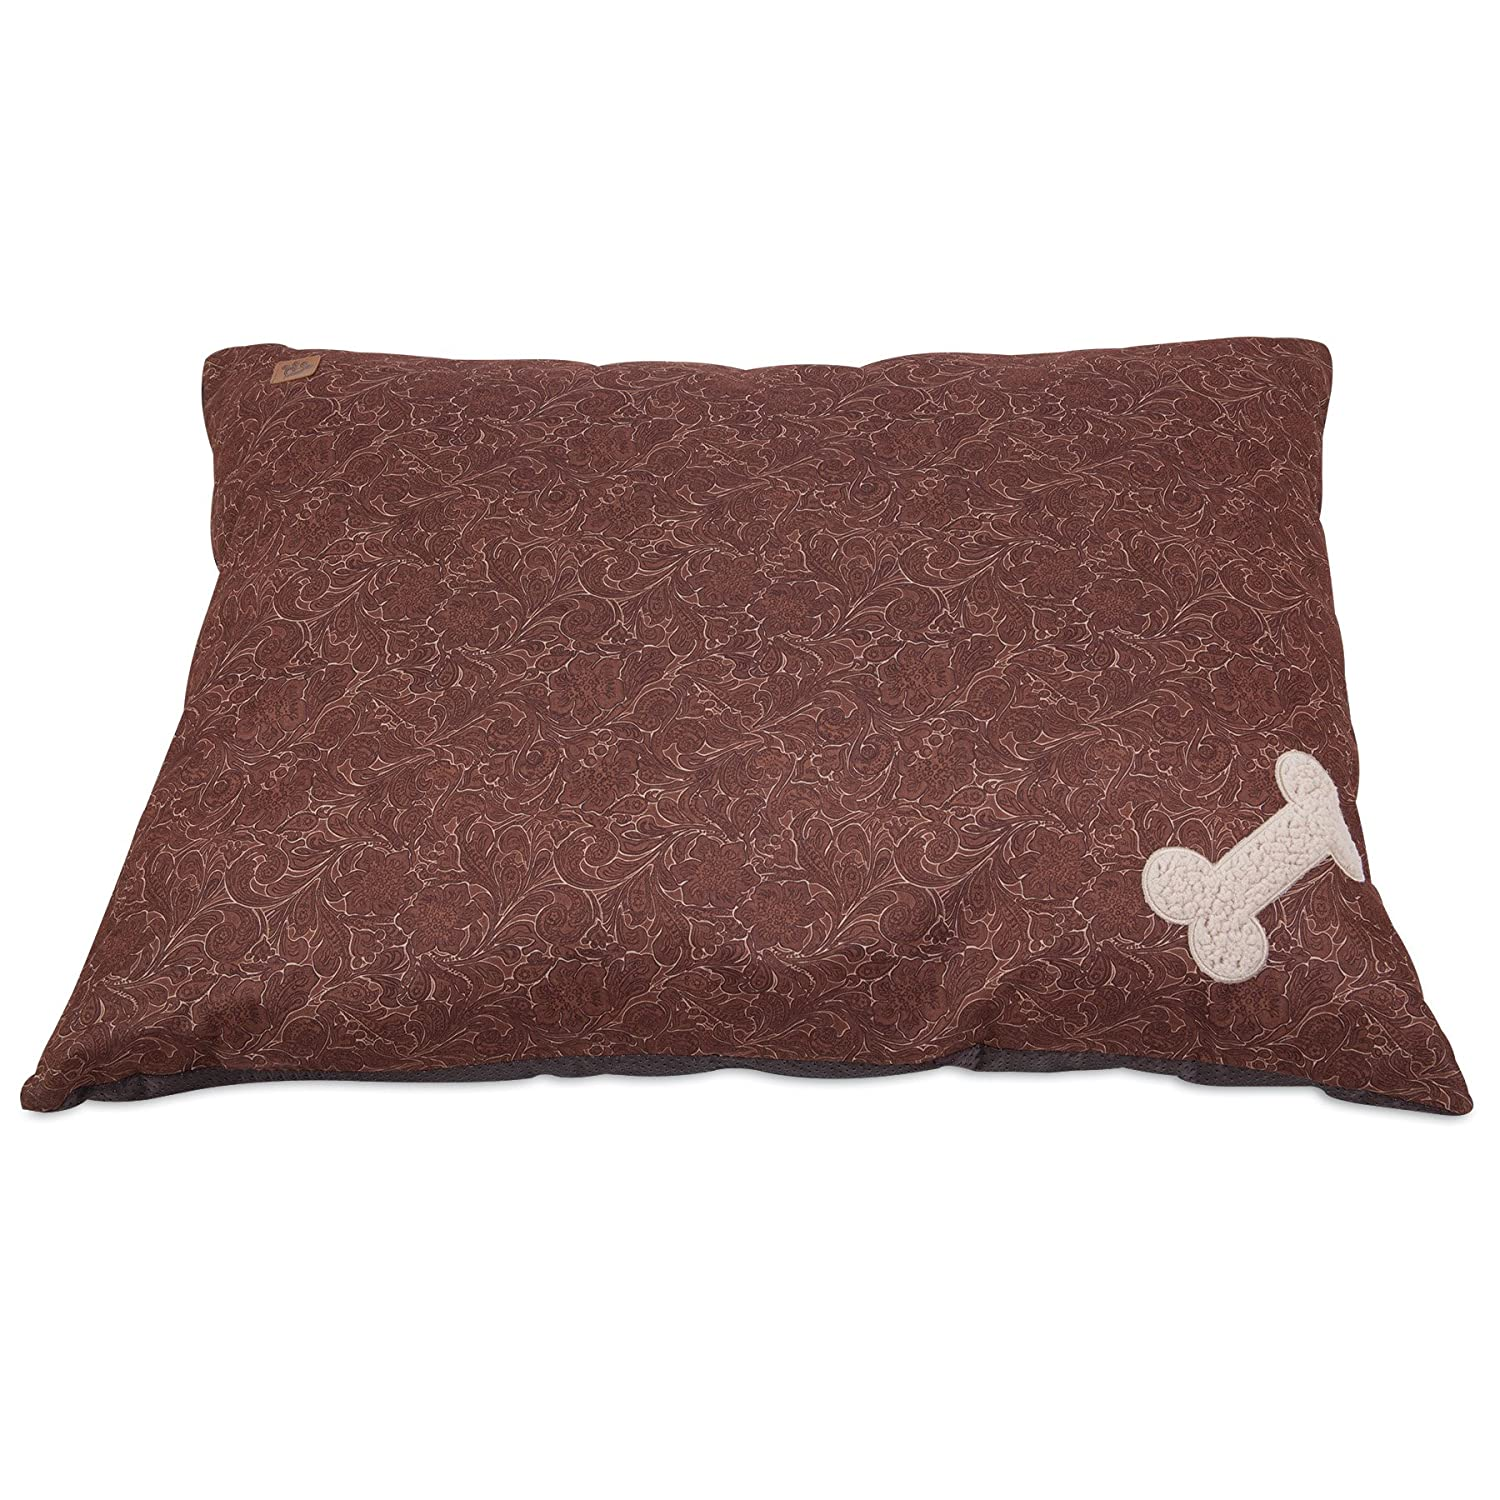 Brown MuttNation Fueled by Miranda Lambert Bone Applique Pillow Dog Bed, Brown Tooled Leather Print 27x36-Inch